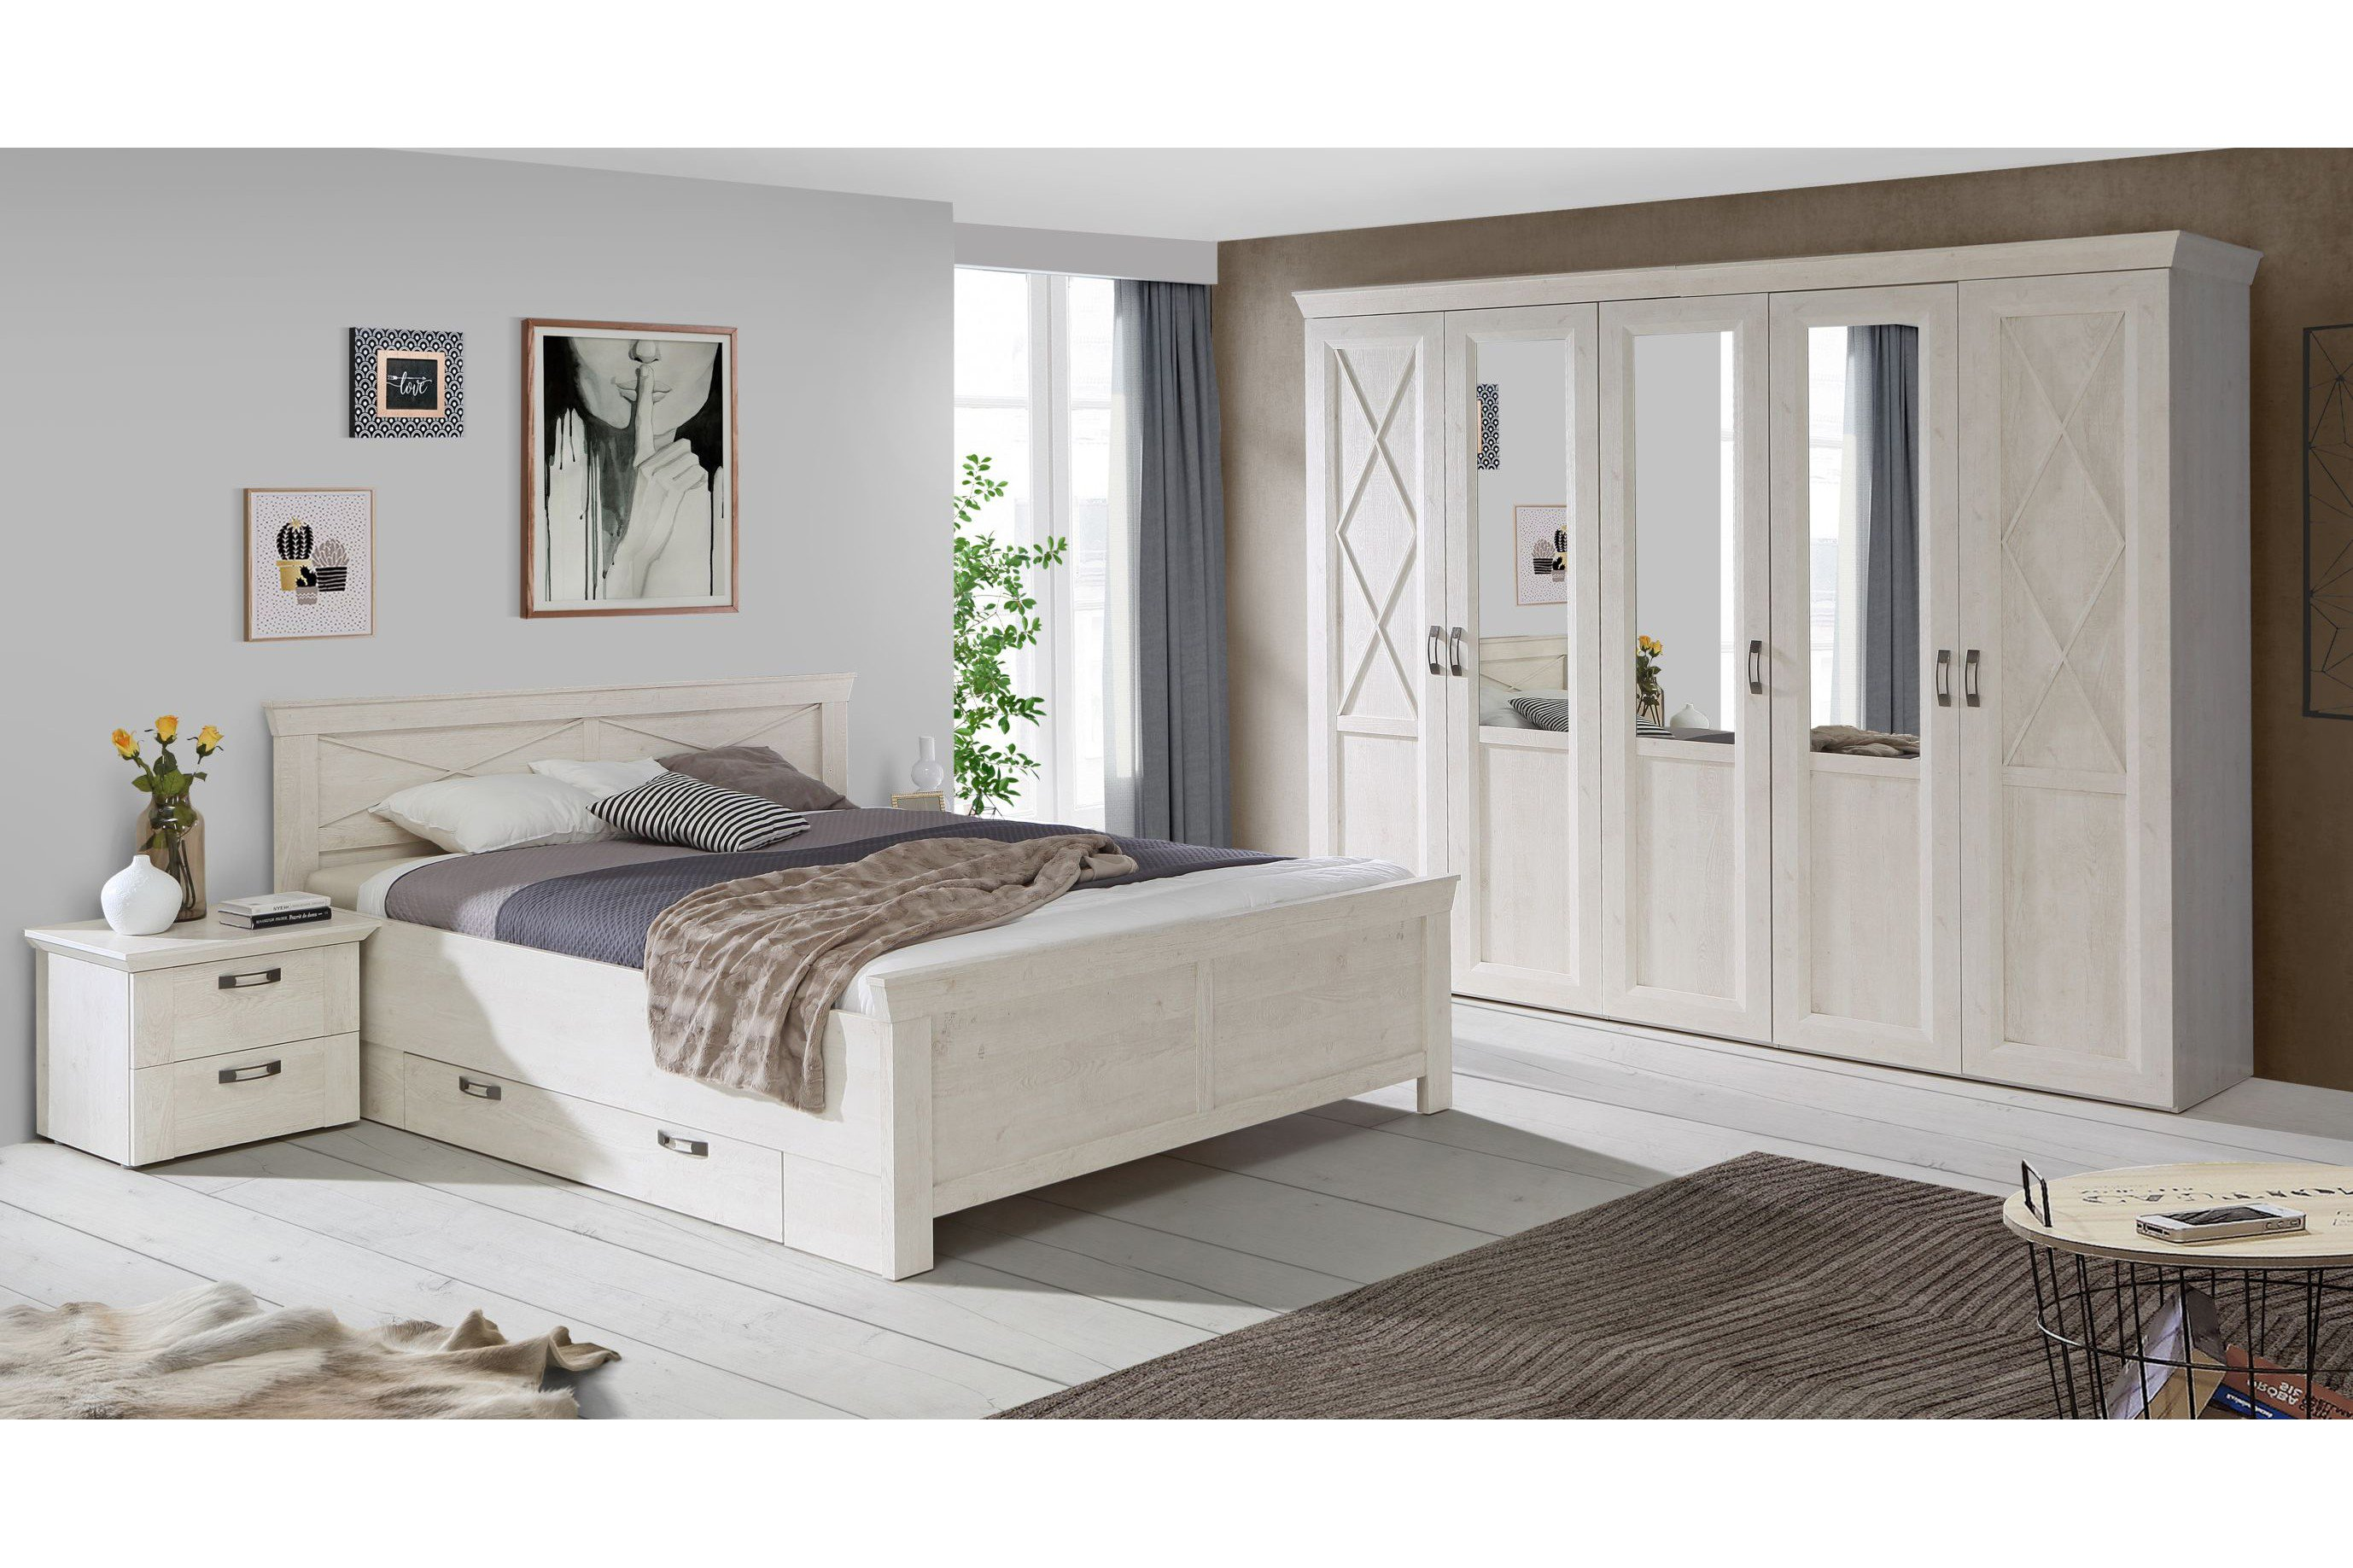 forte kashmir schlafzimmer pinia wei m bel letz ihr online shop. Black Bedroom Furniture Sets. Home Design Ideas